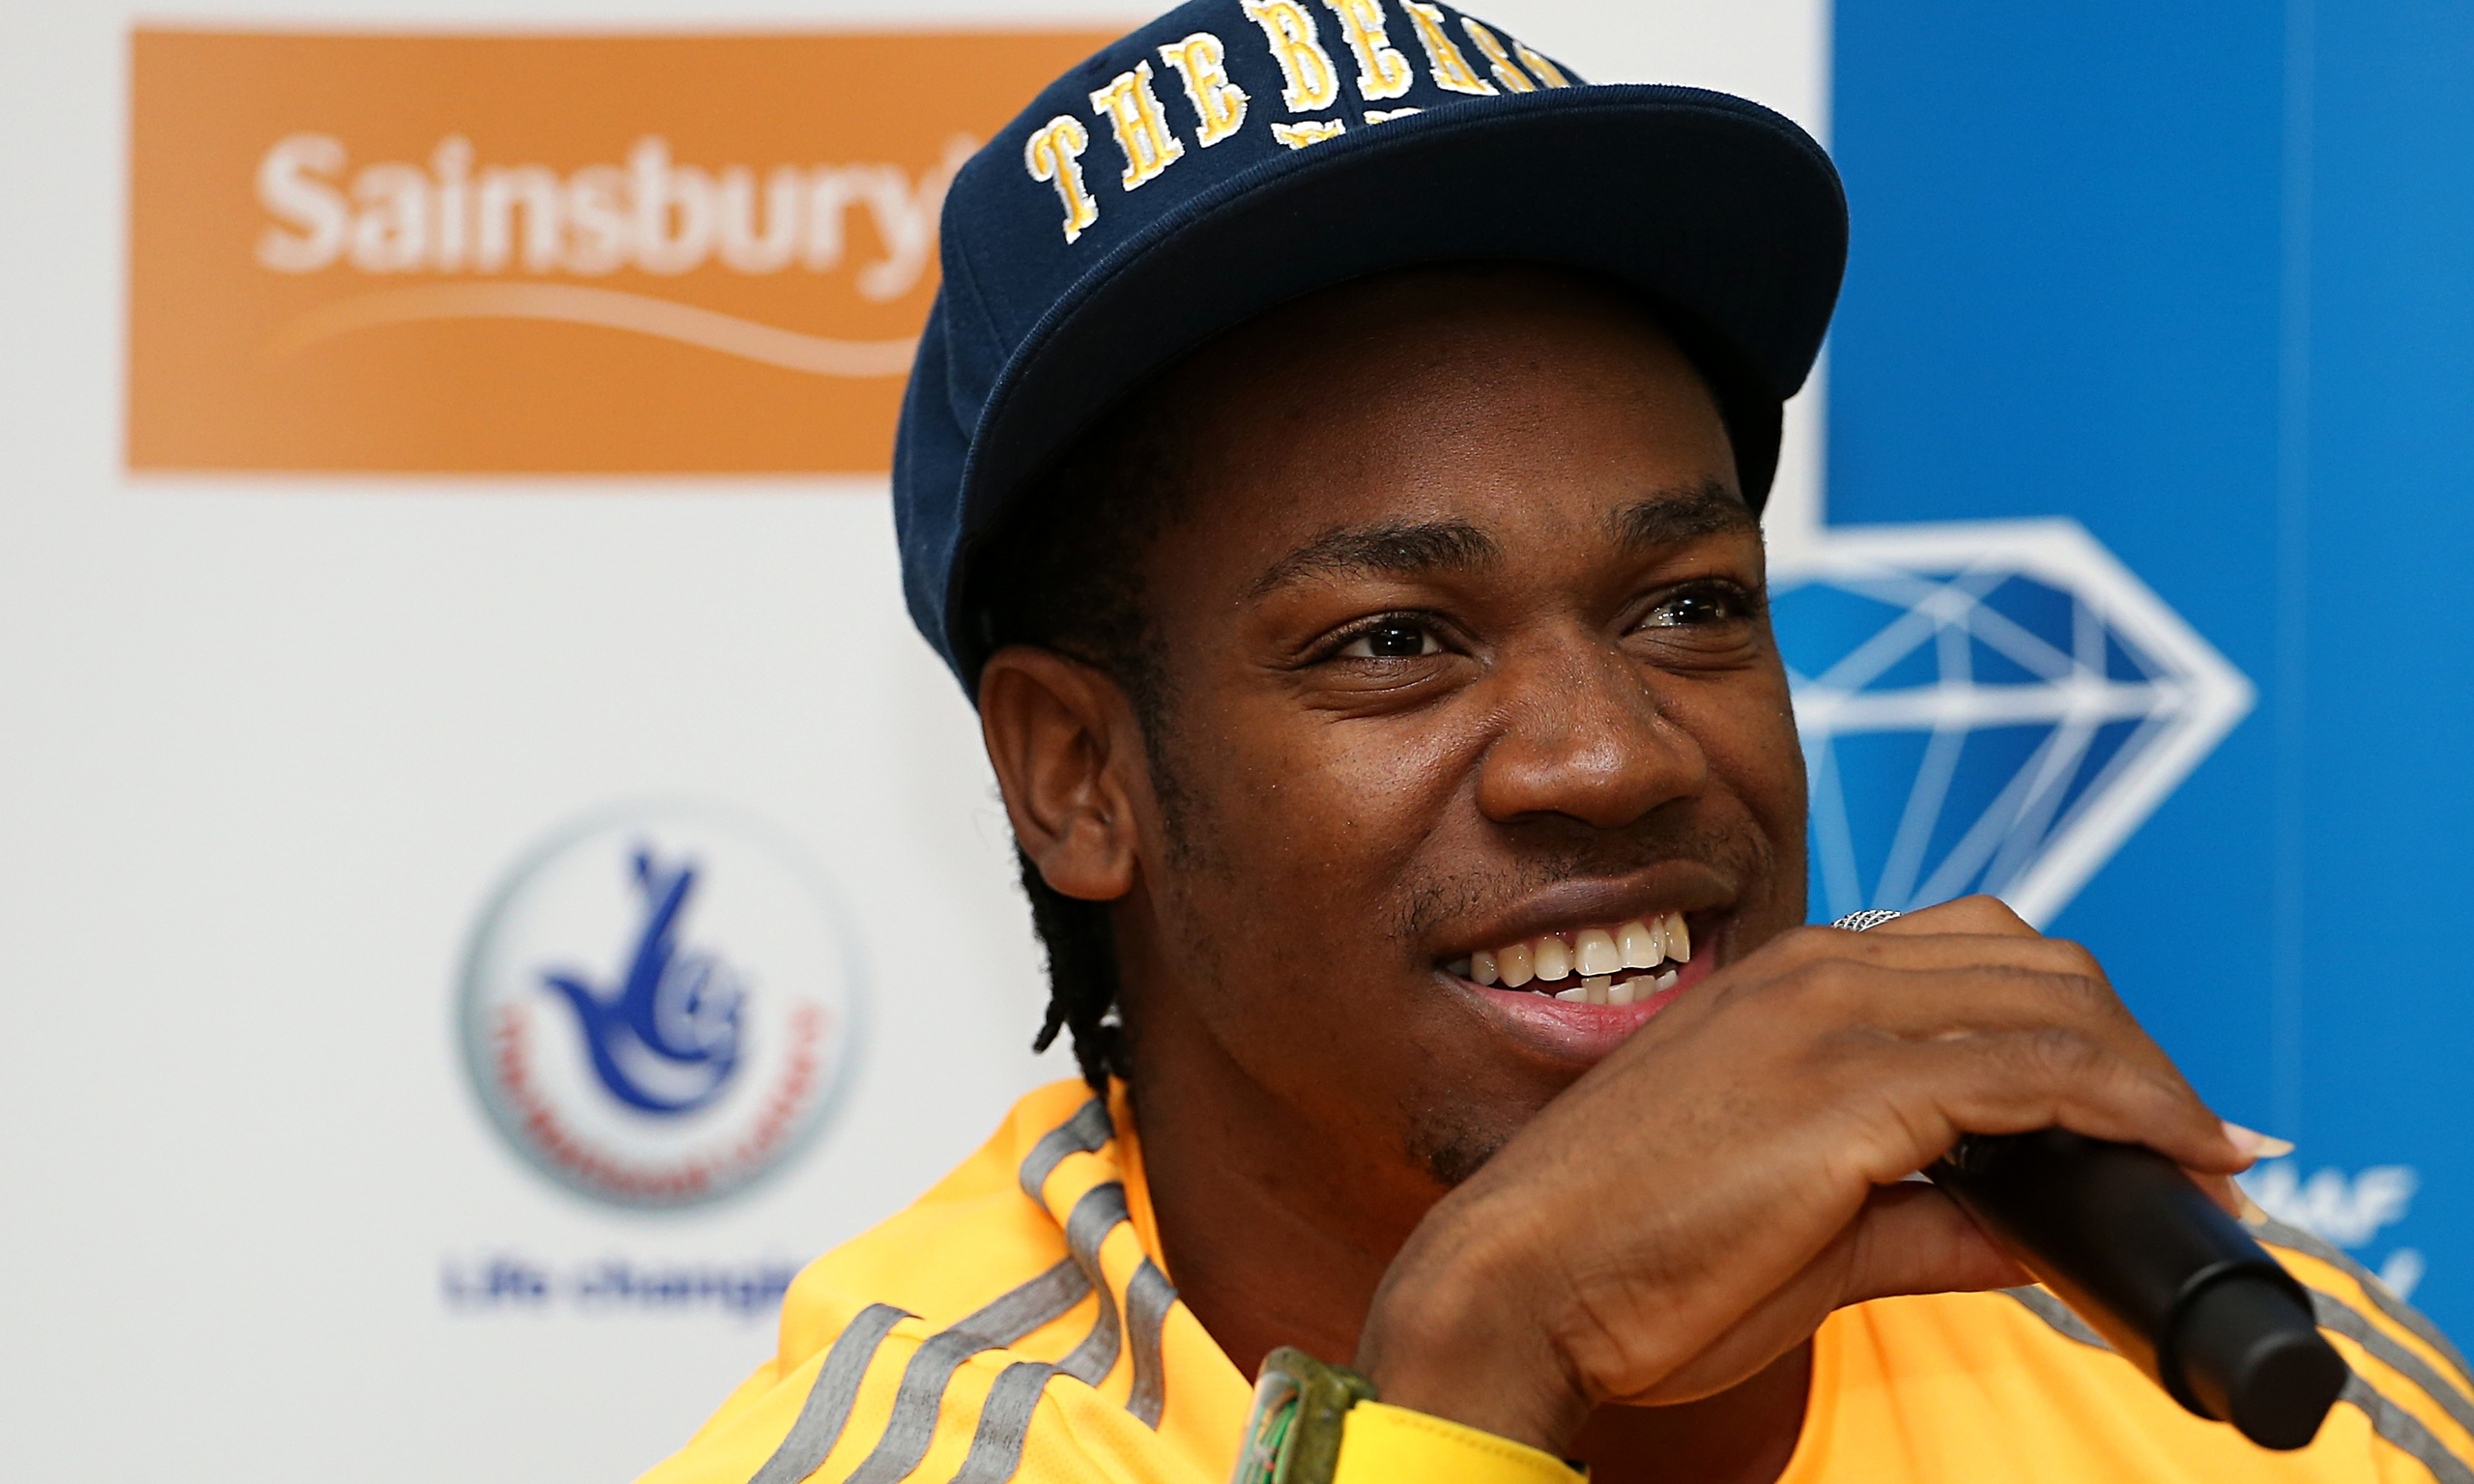 Yohan Blake drops out in blow to Commonwealth Games' credibility | Sport | The Guardian